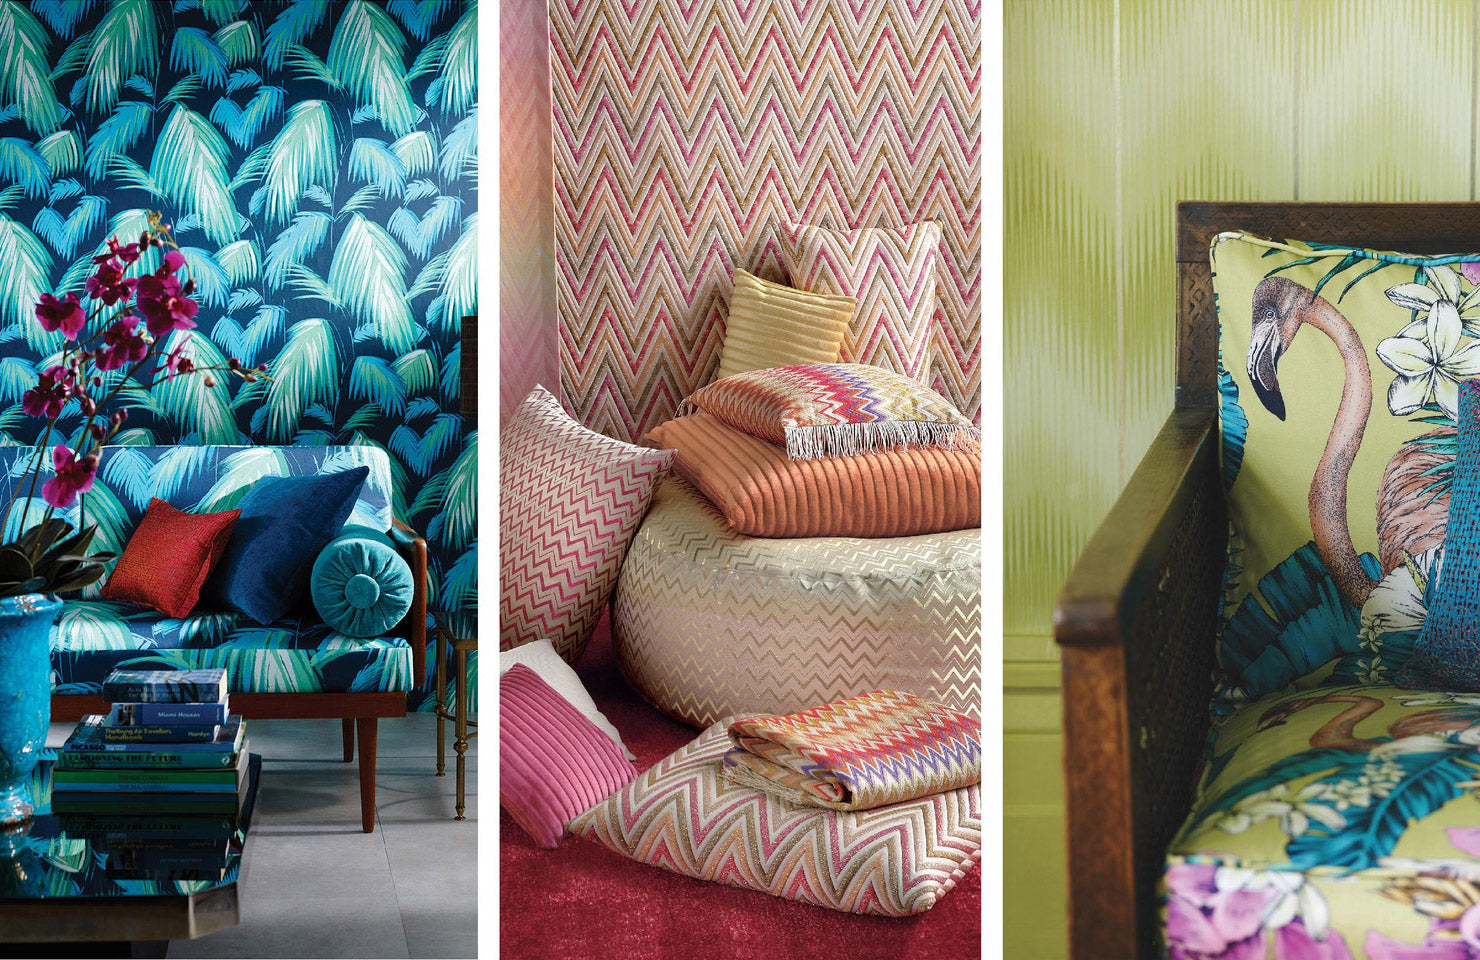 Soft furnishings and Wall coverings